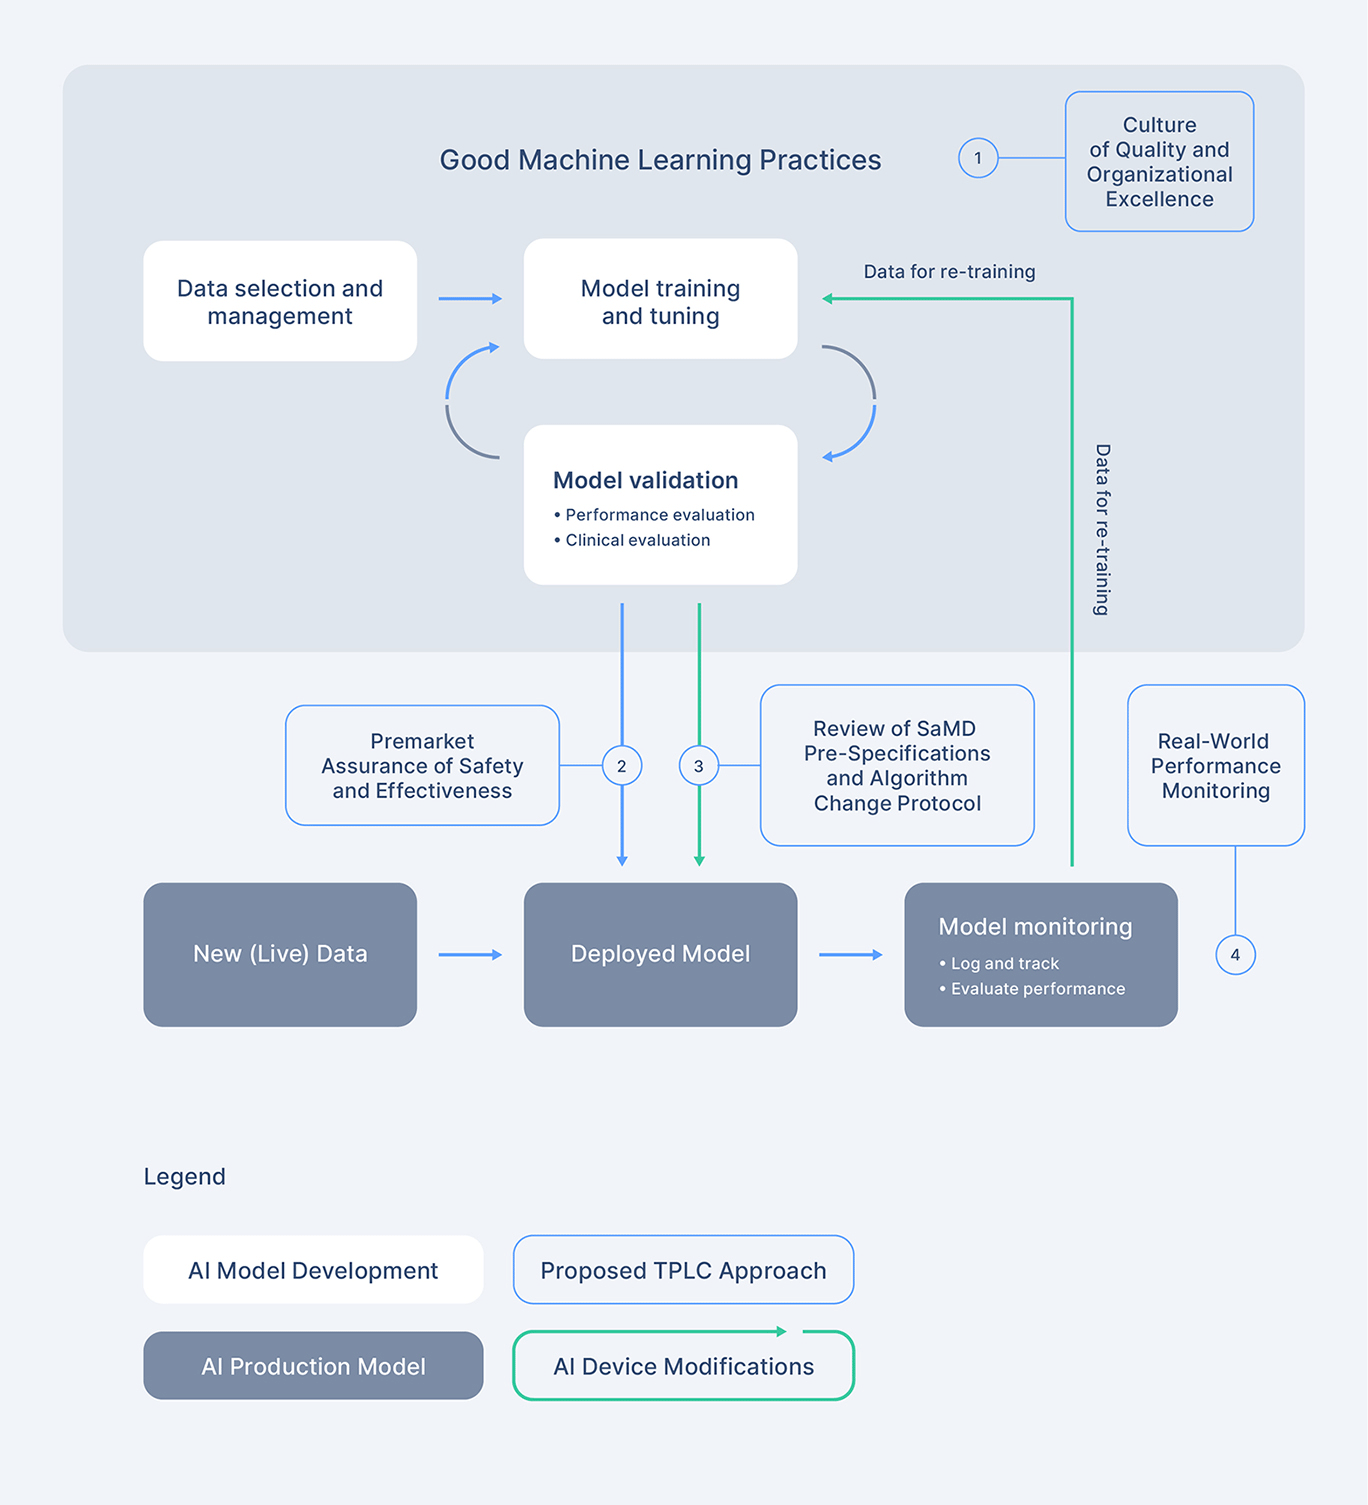 Overlay of FDA's TPLC approach on AI/ML workflow.